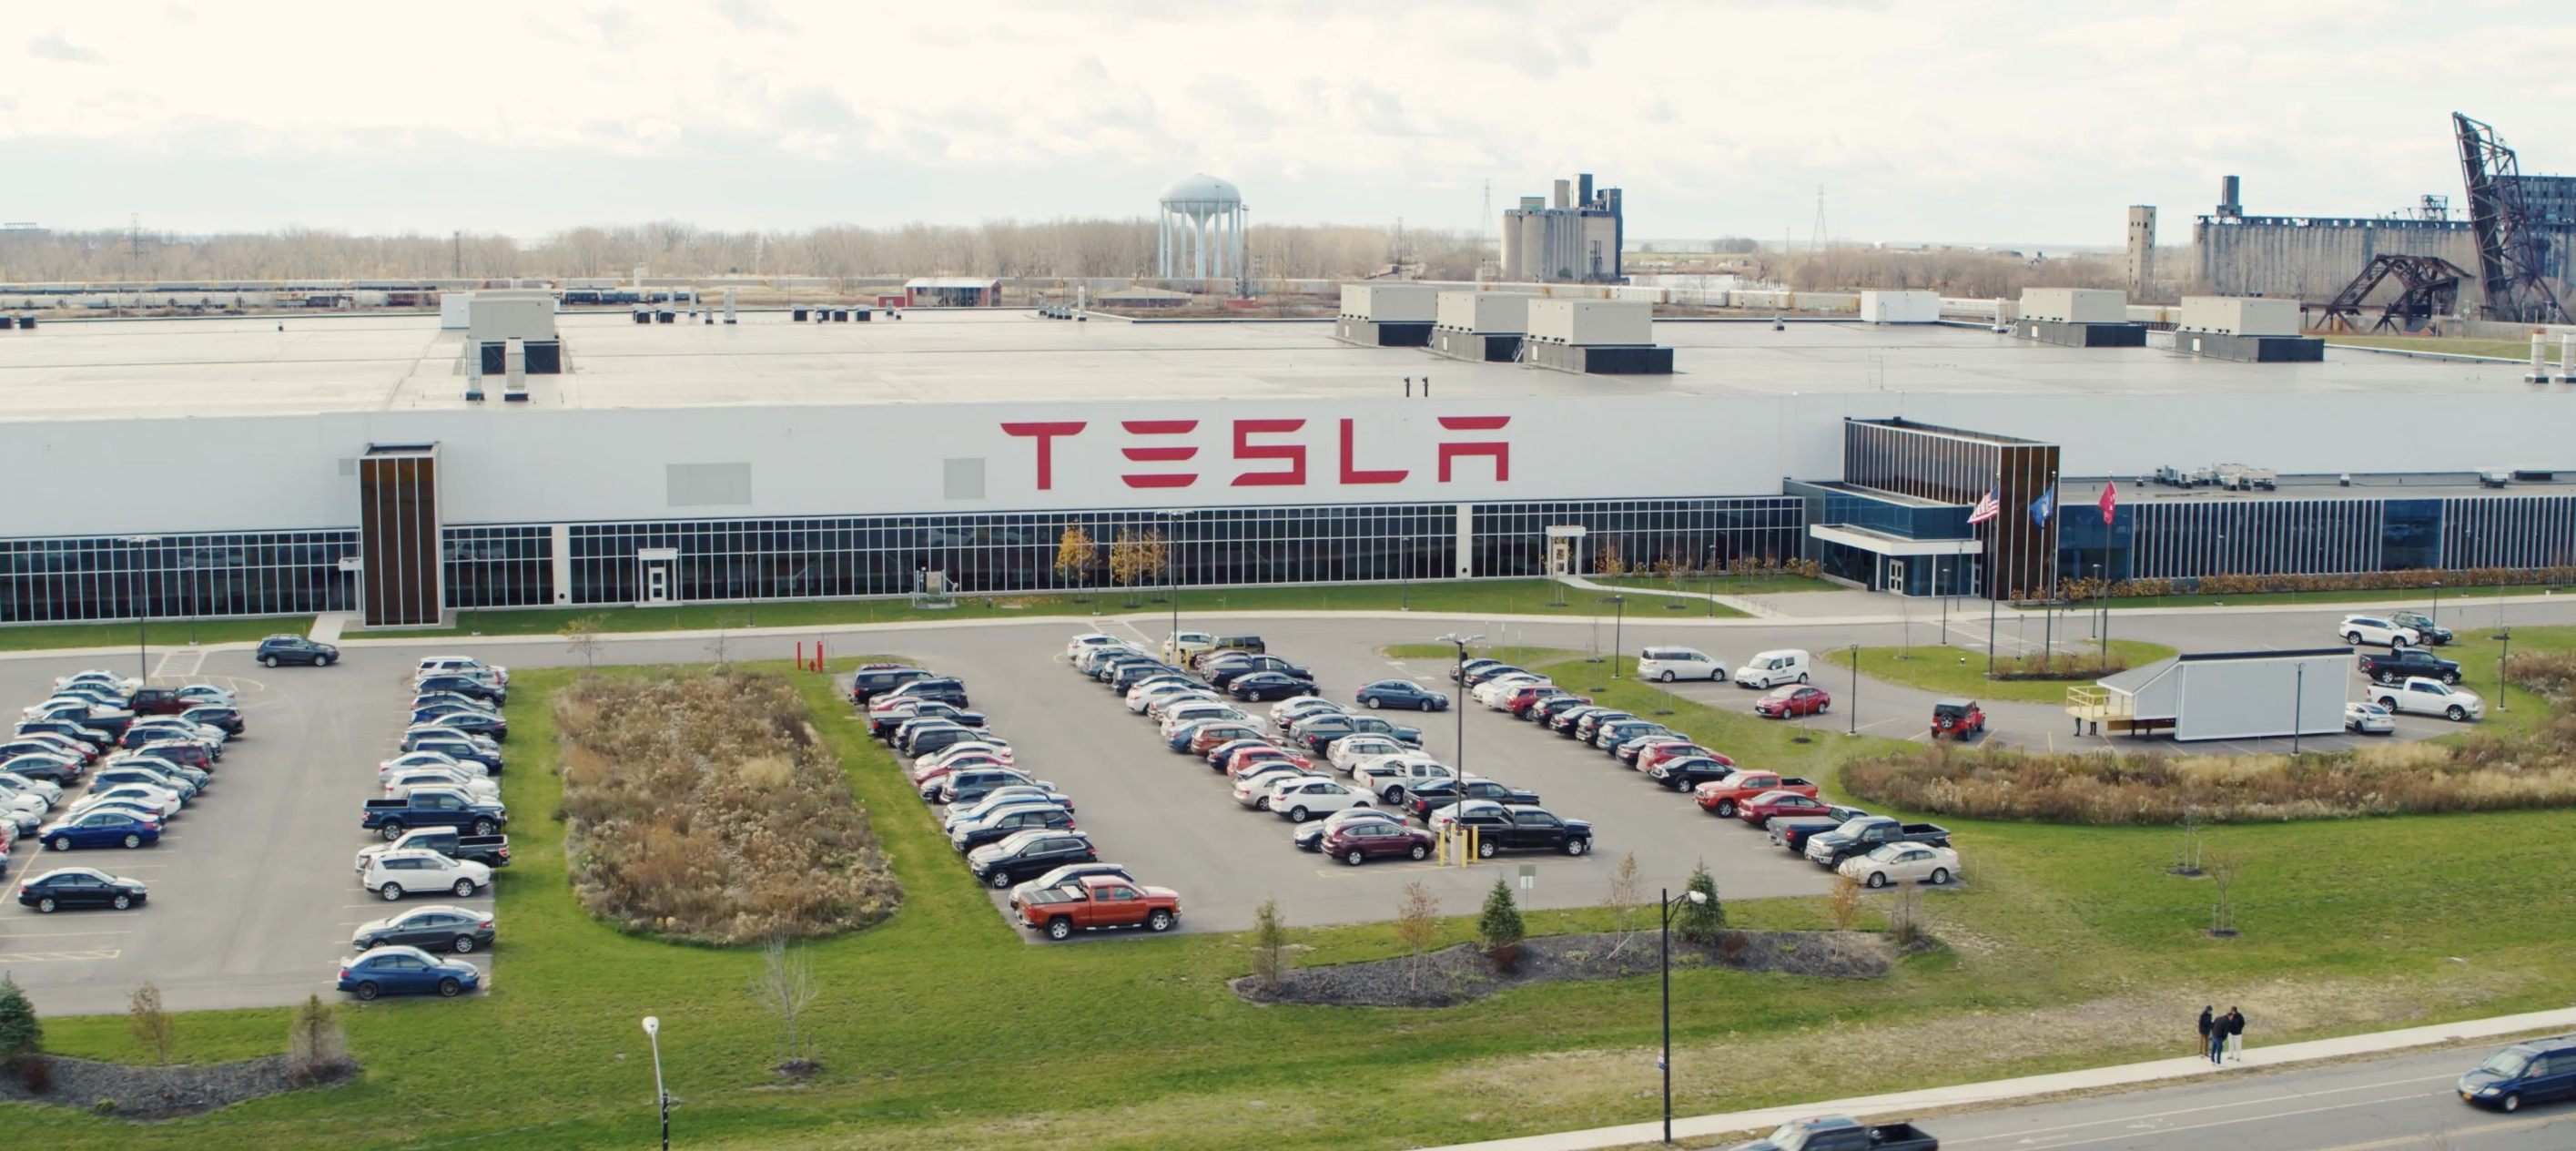 Tesla is facing another unionization effort, this time at Gigafactory 2